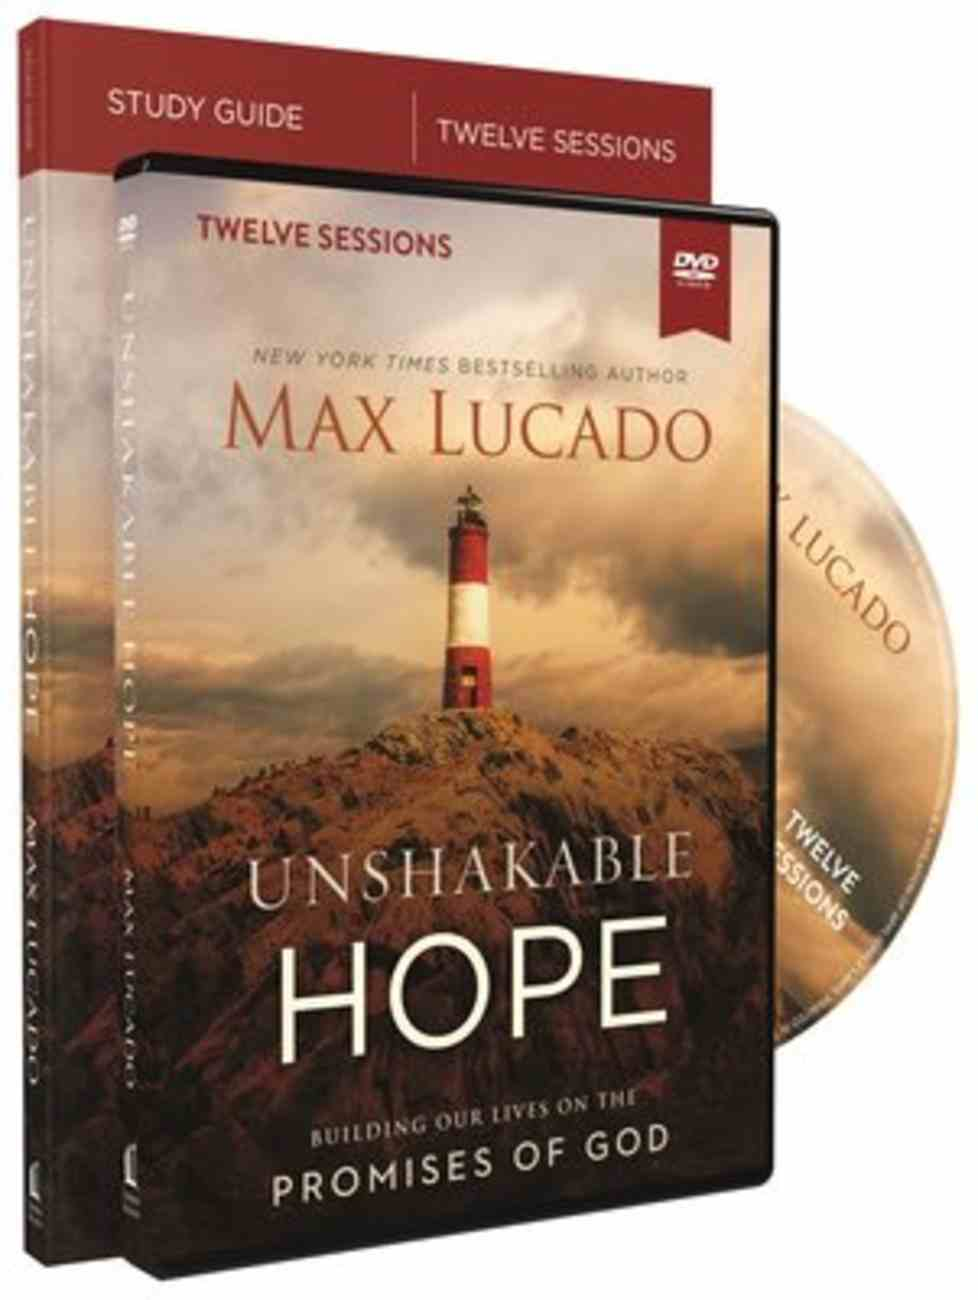 Unshakable Hope: Building Our Lives on the Promises of God (Study Guide With Dvd) Paperback